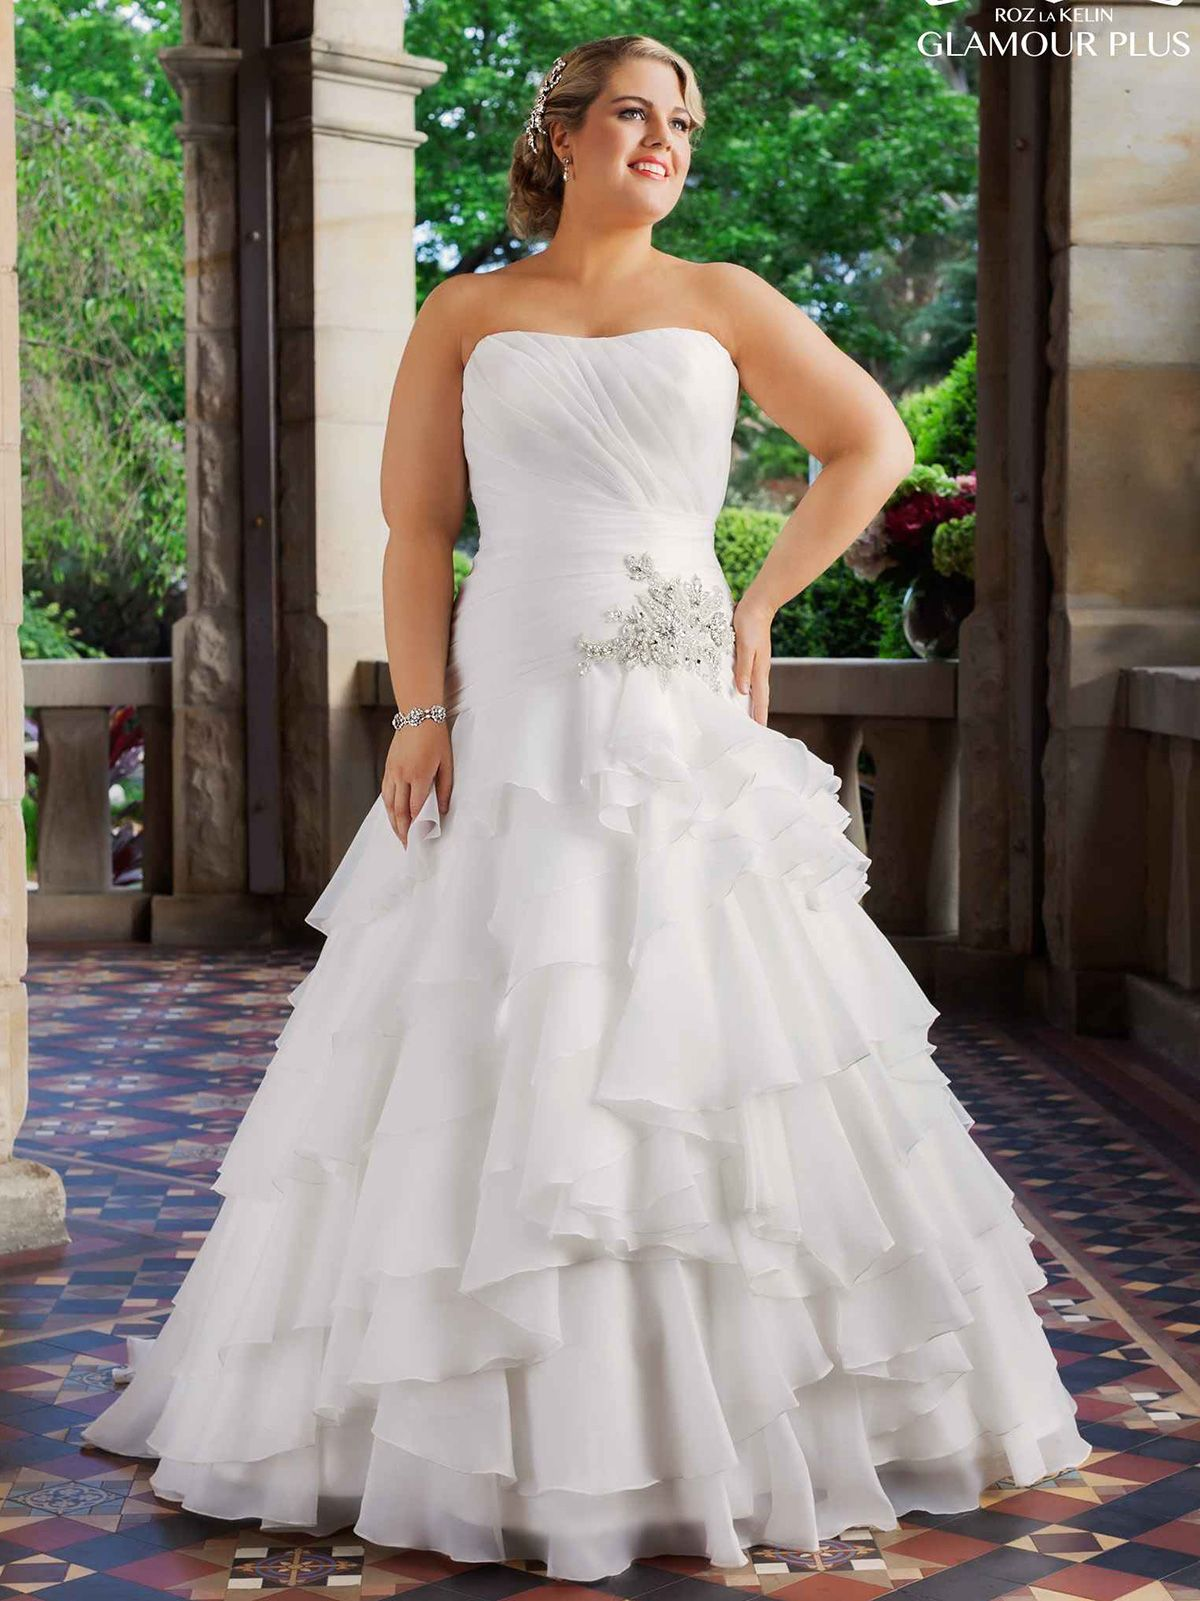 Rozlakelin bodice plus size bridal dress desiree dimitradesigns